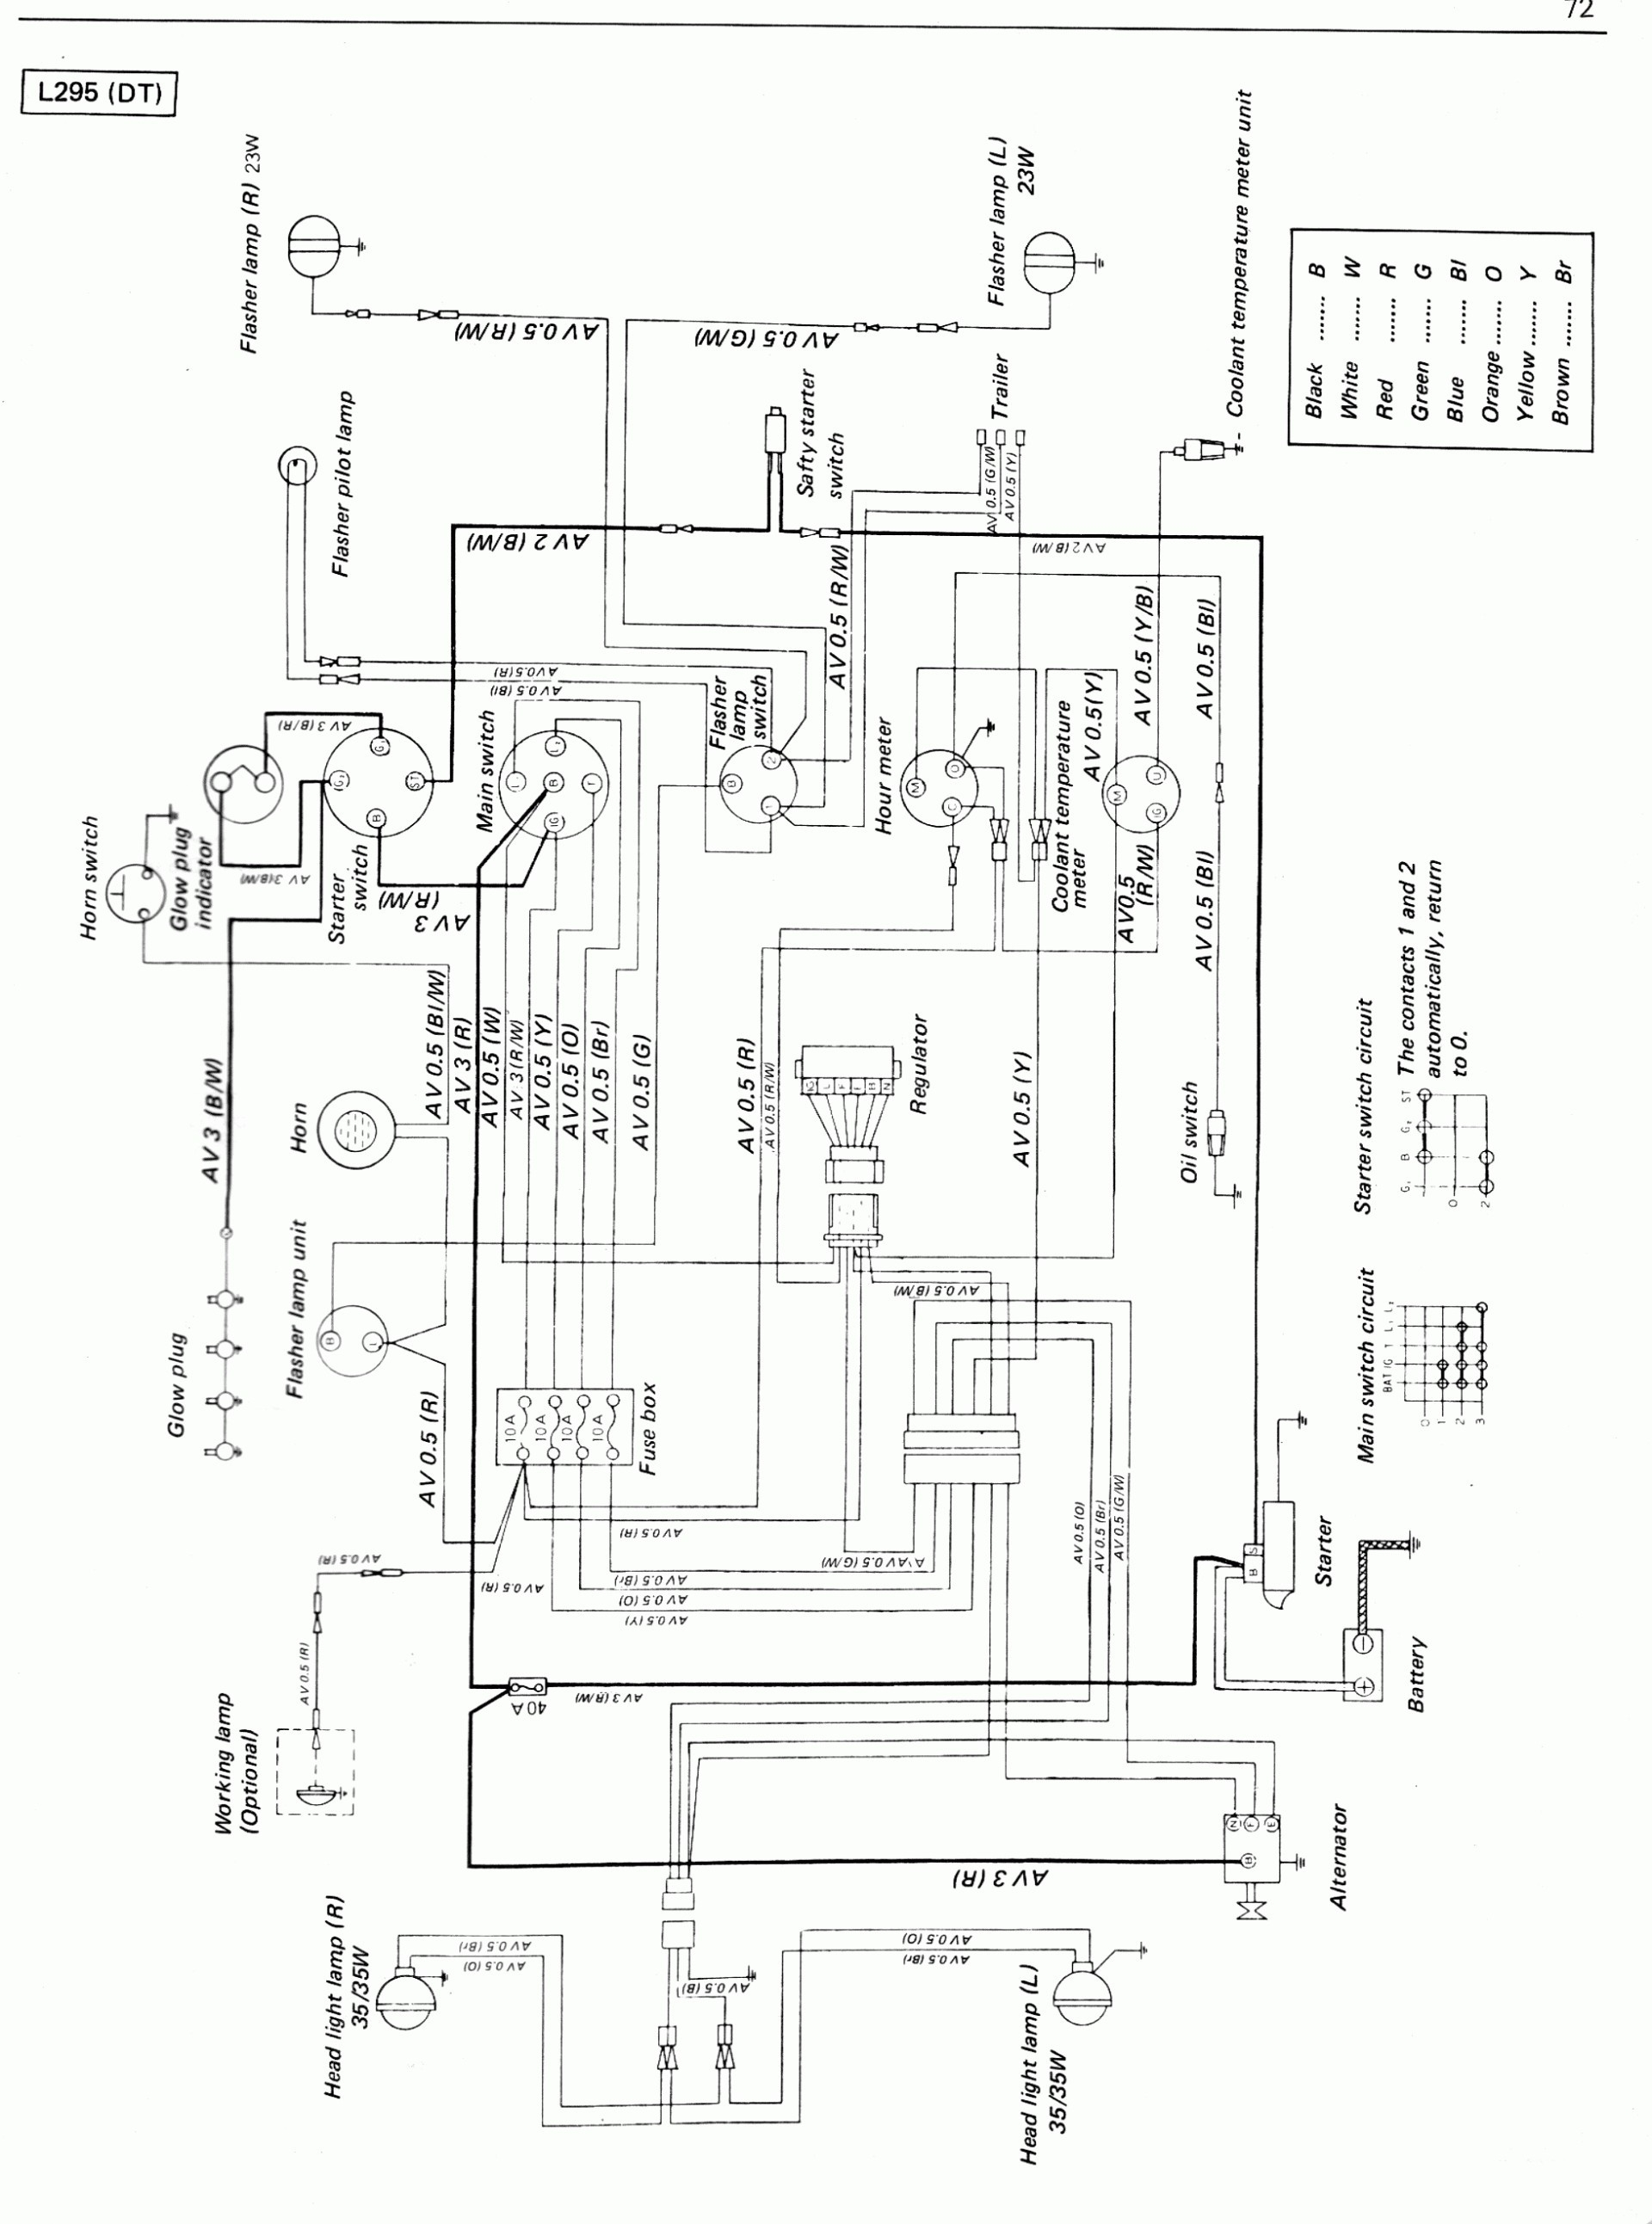 Kubota Wiring Schematics - Wiring Diagram & Cable Management on